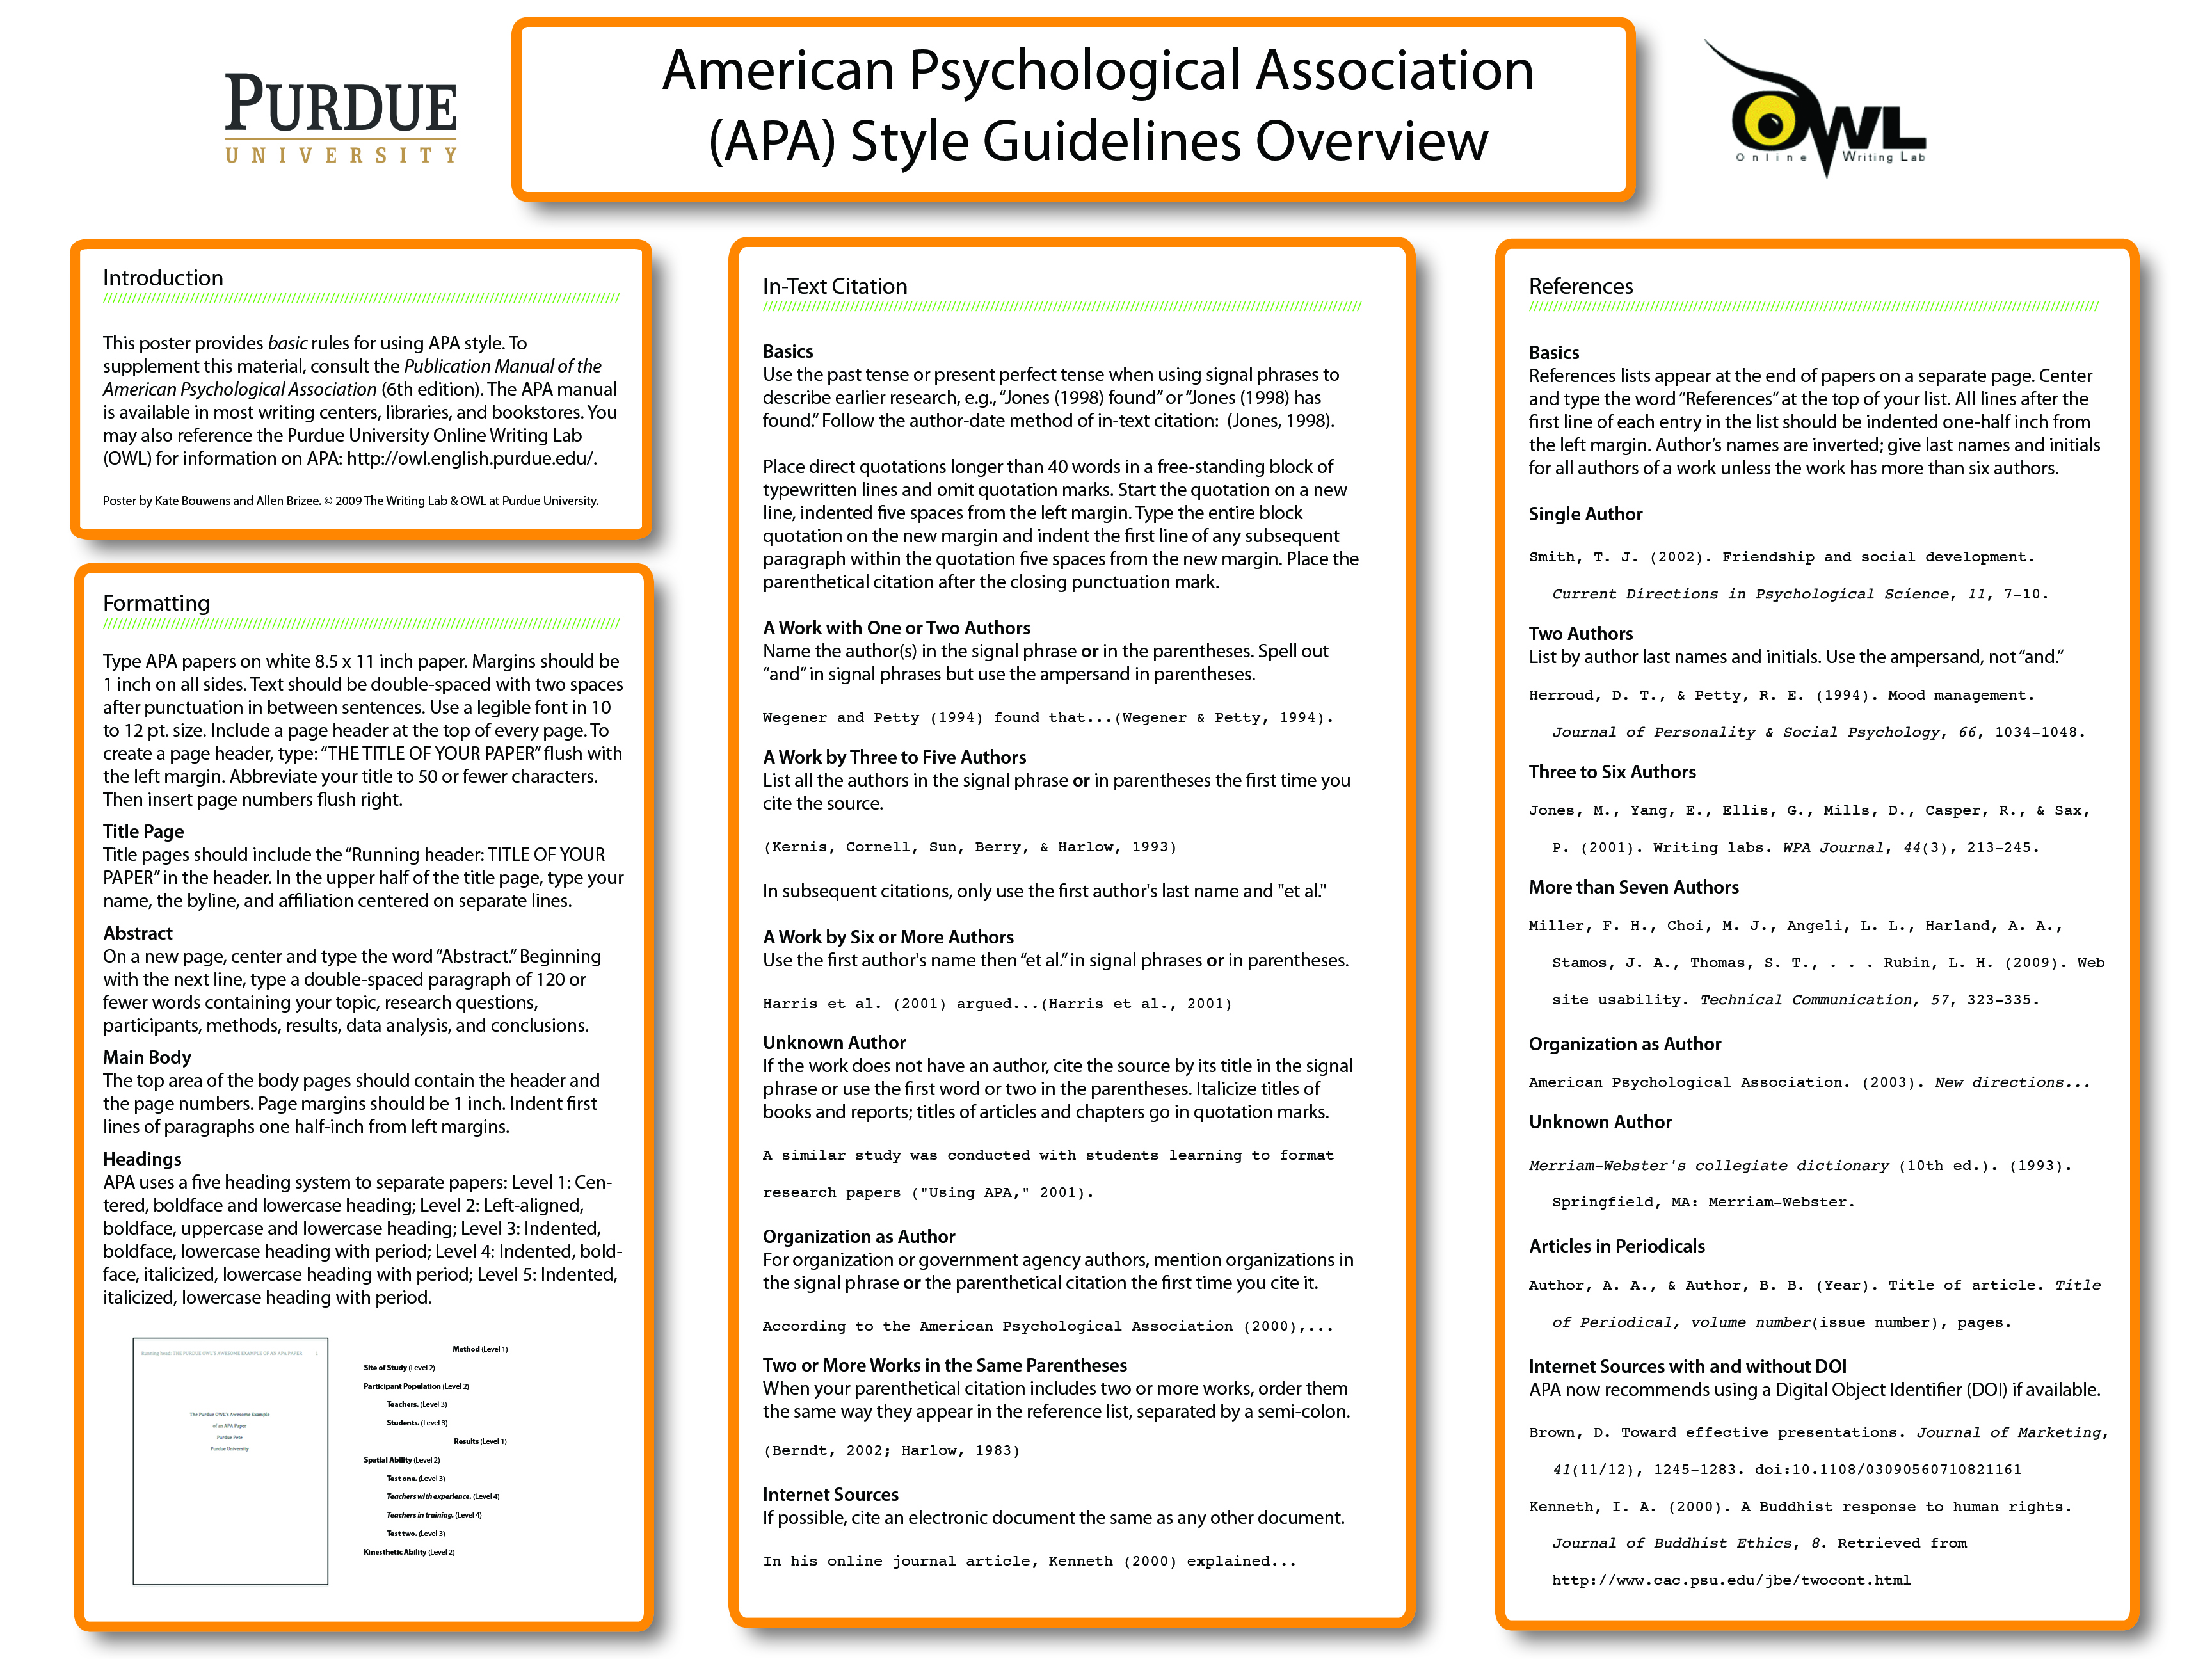 005 Research Paper Apa Example Purdue Owl Astounding Full